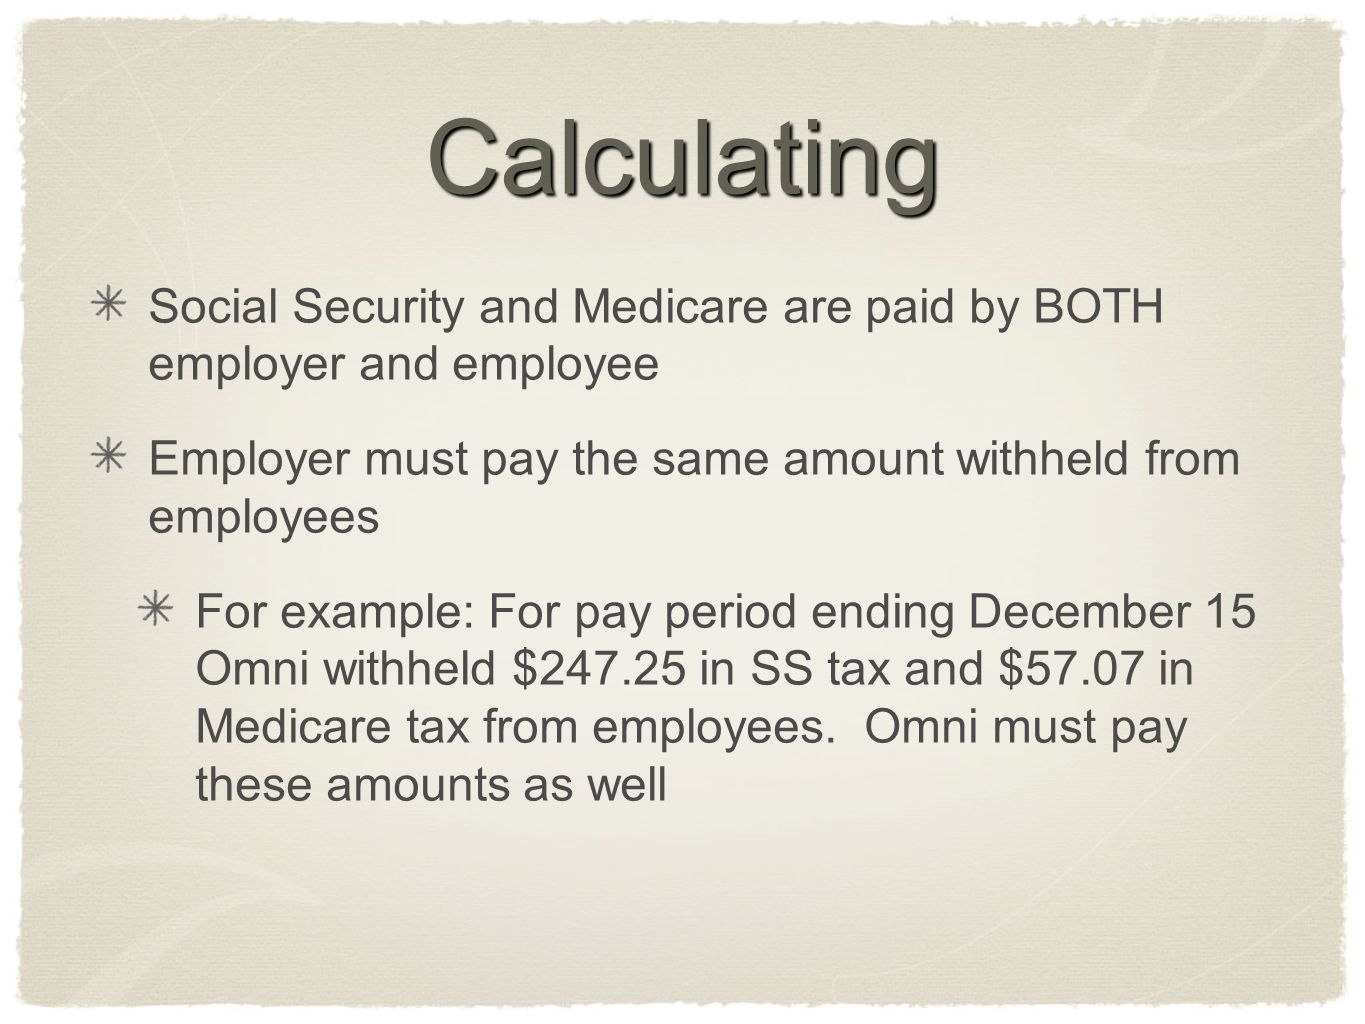 Calculating Social Security and Medicare are paid by BOTH employer and employee. Employer must pay the same amount withheld from employees.